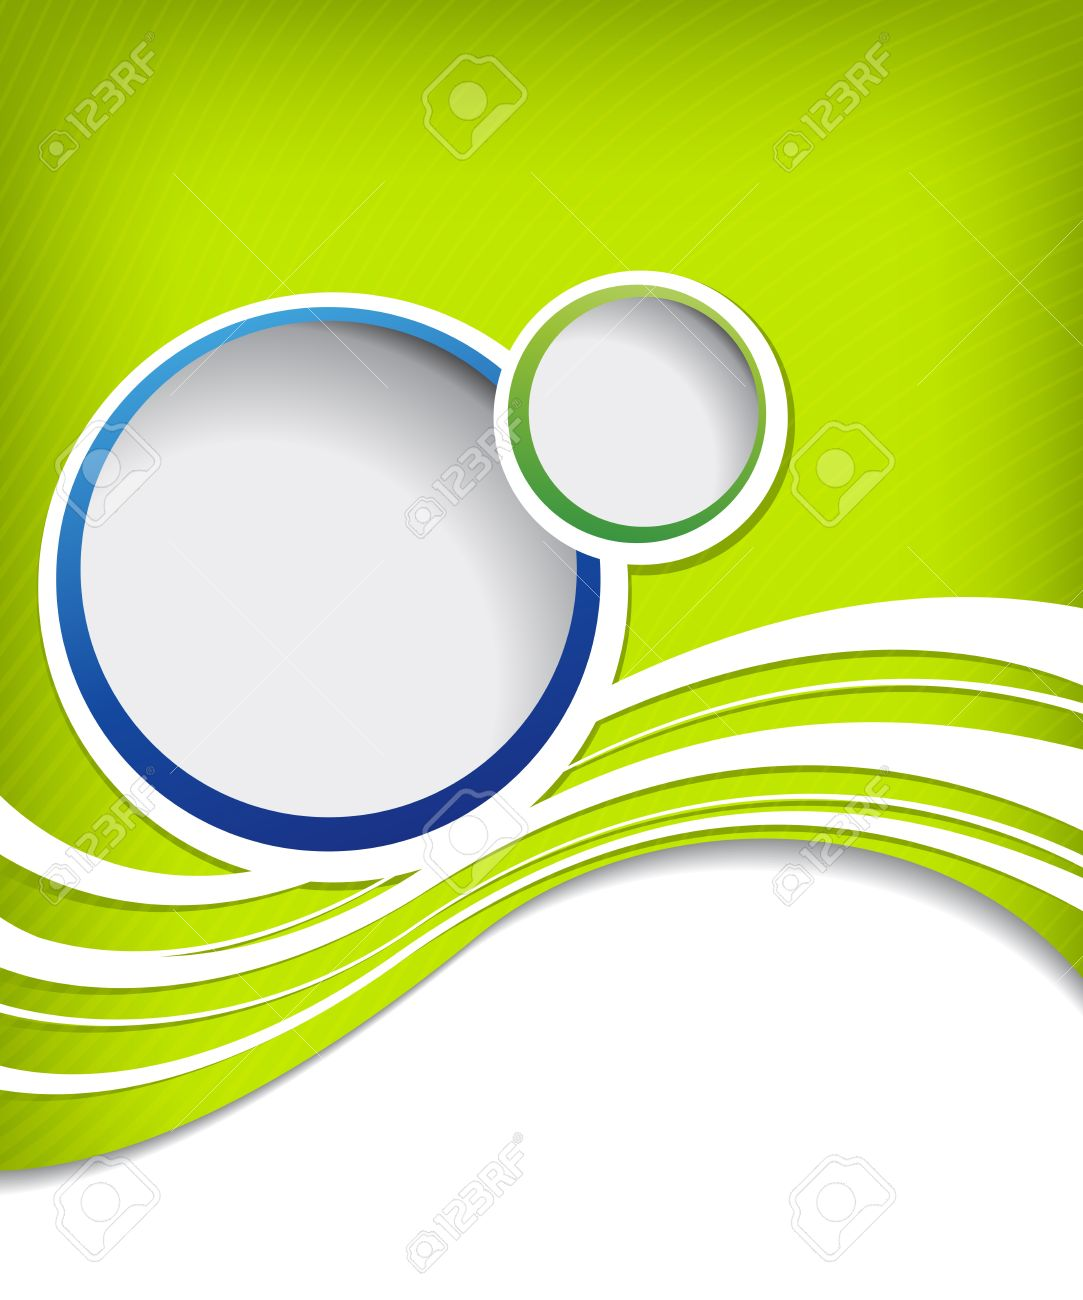 blue circle on green wave background flyer design stock photo